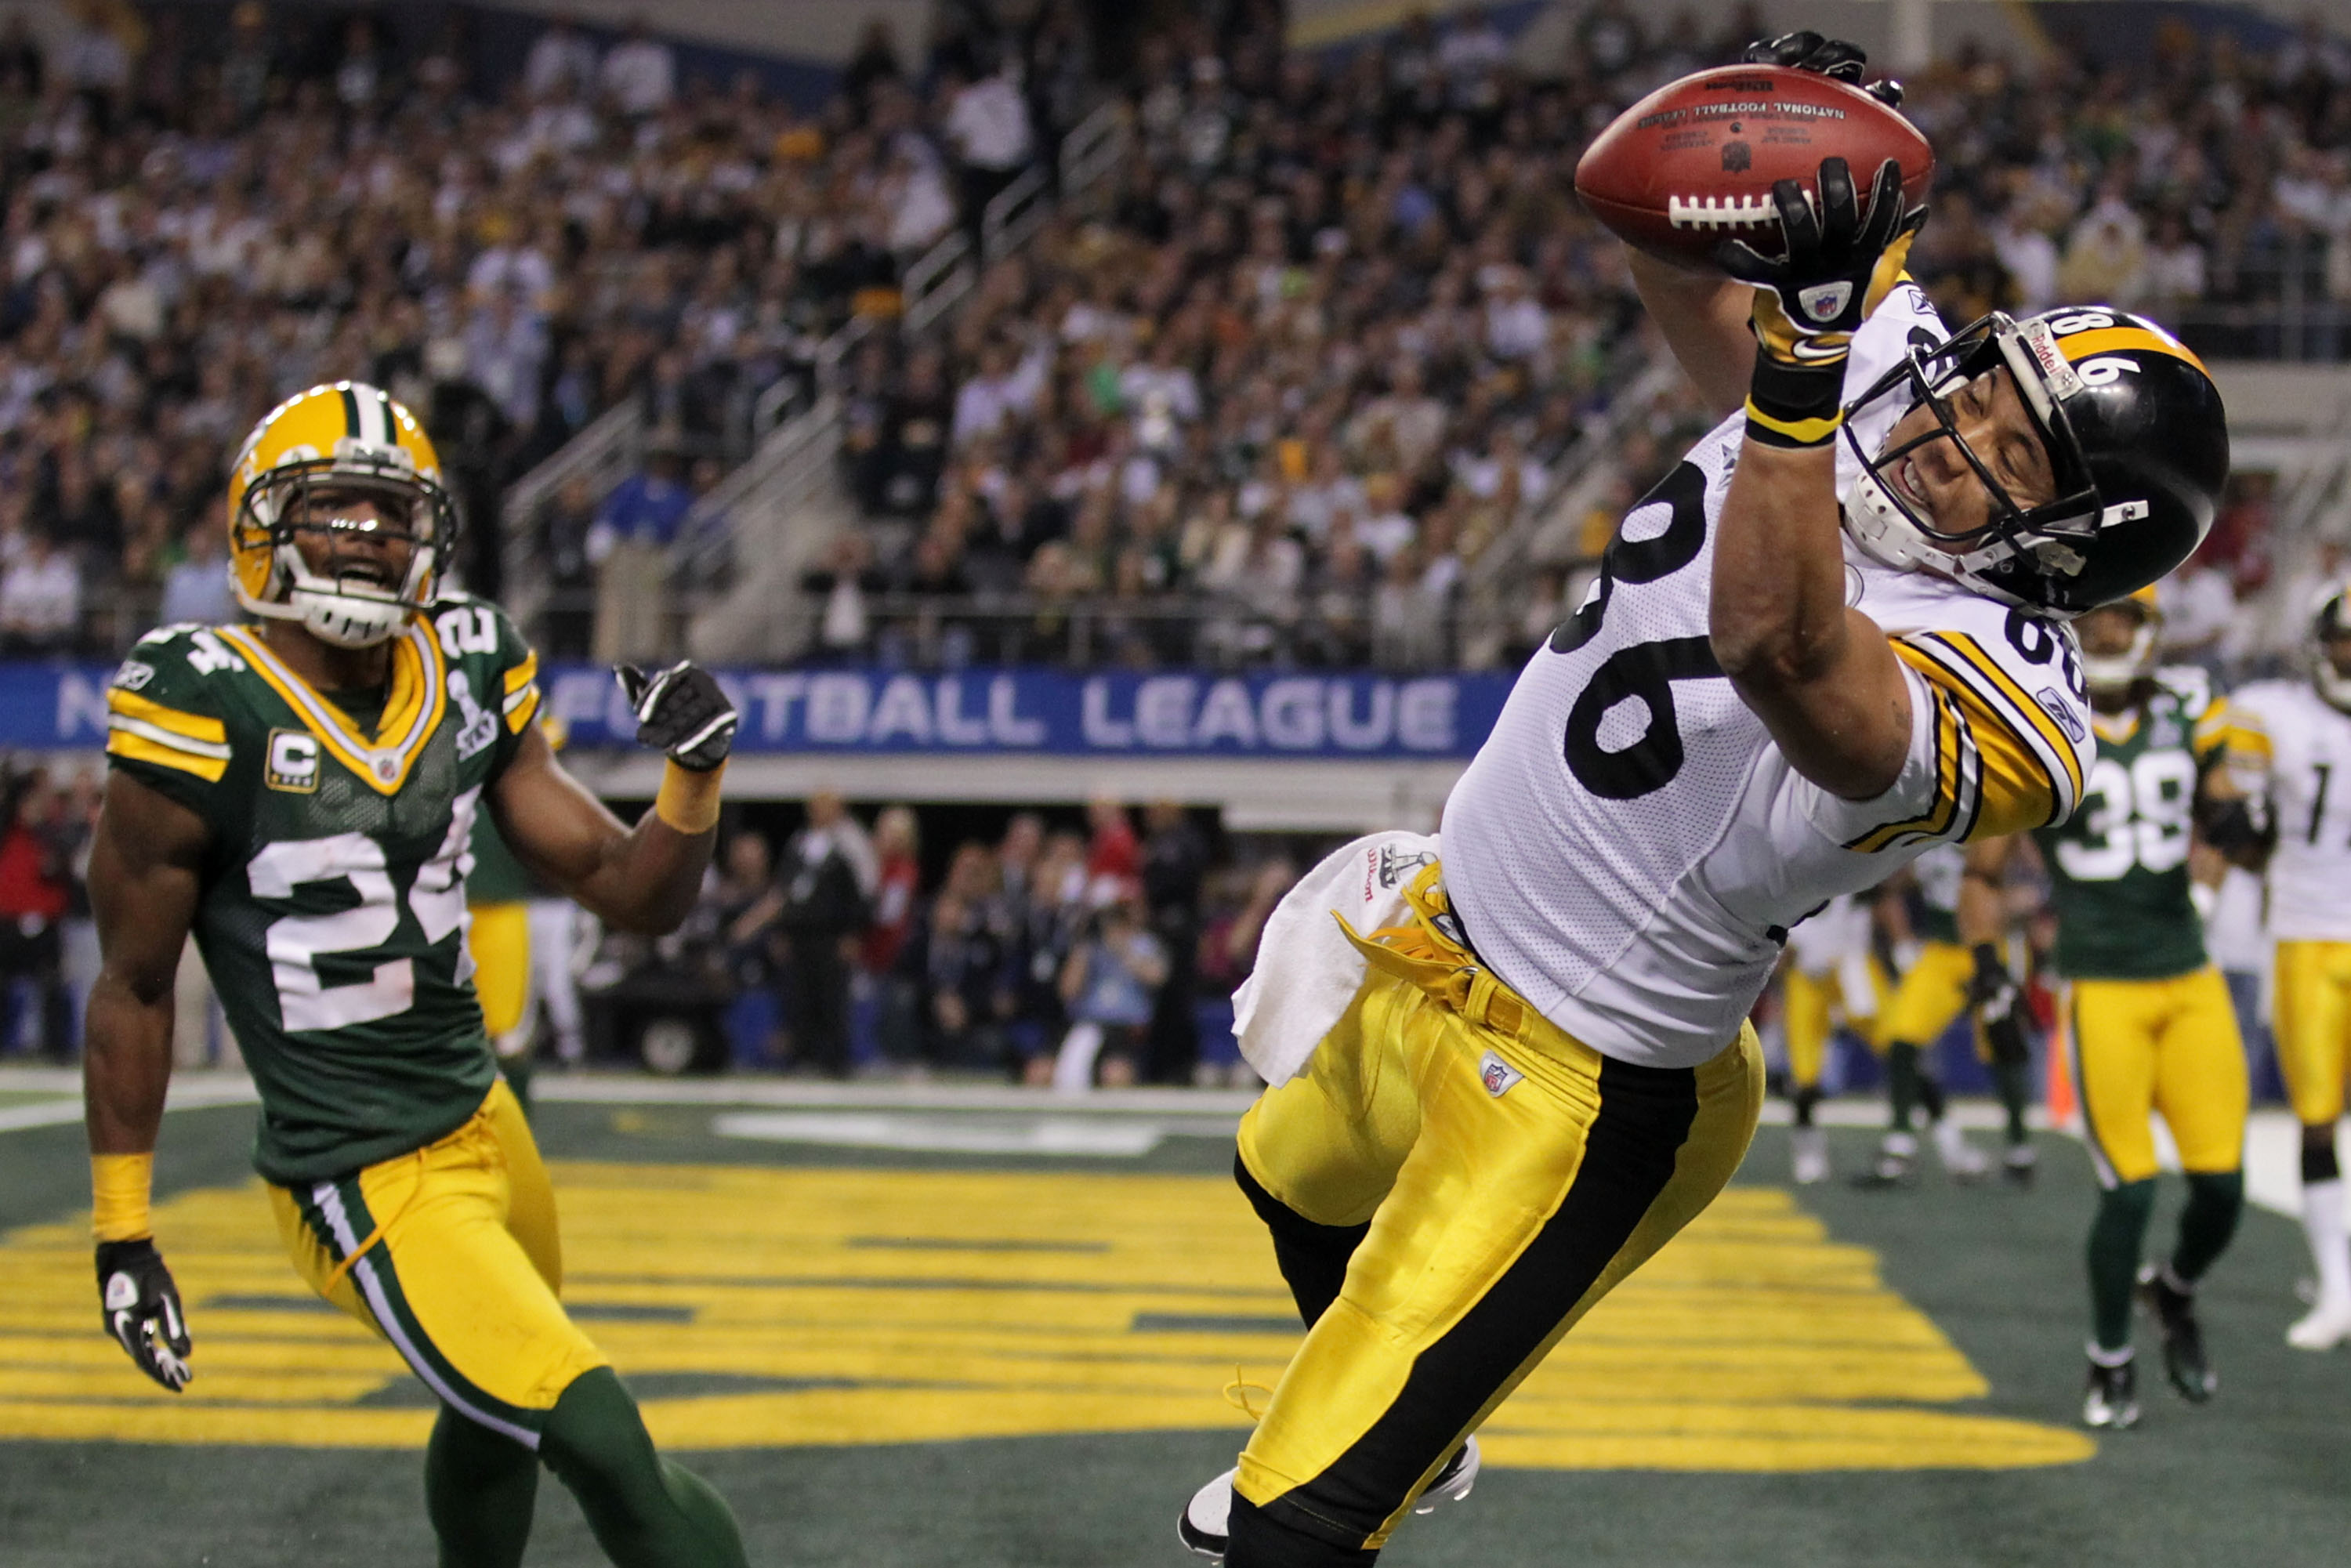 ARLINGTON, TX - FEBRUARY 06:  Hines Ward #86 of the Pittsburgh Steelers catches an eight yard touchdown pass in the second quarter against Jarrett Bush #24 of the Green Bay Packers in Super Bowl XLV at Cowboys Stadium on February 6, 2011 in Arlington, Tex